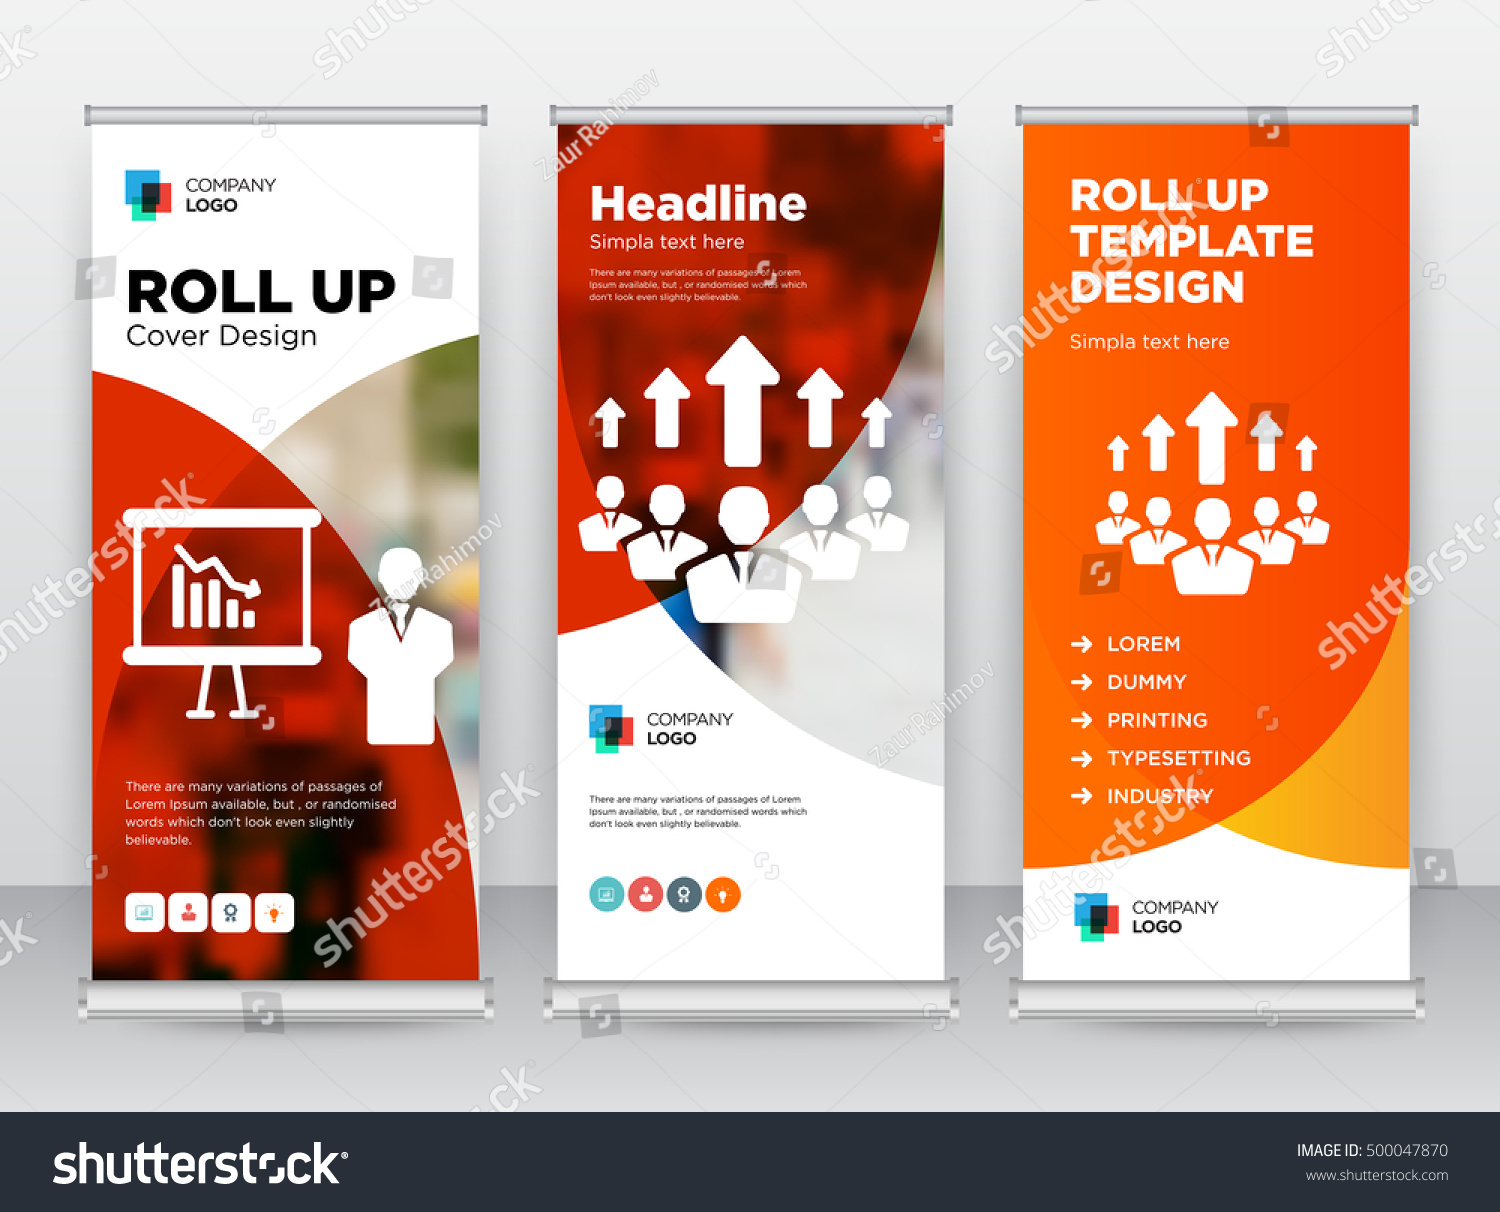 coaching brochure template - red orange training growing team building stock vector